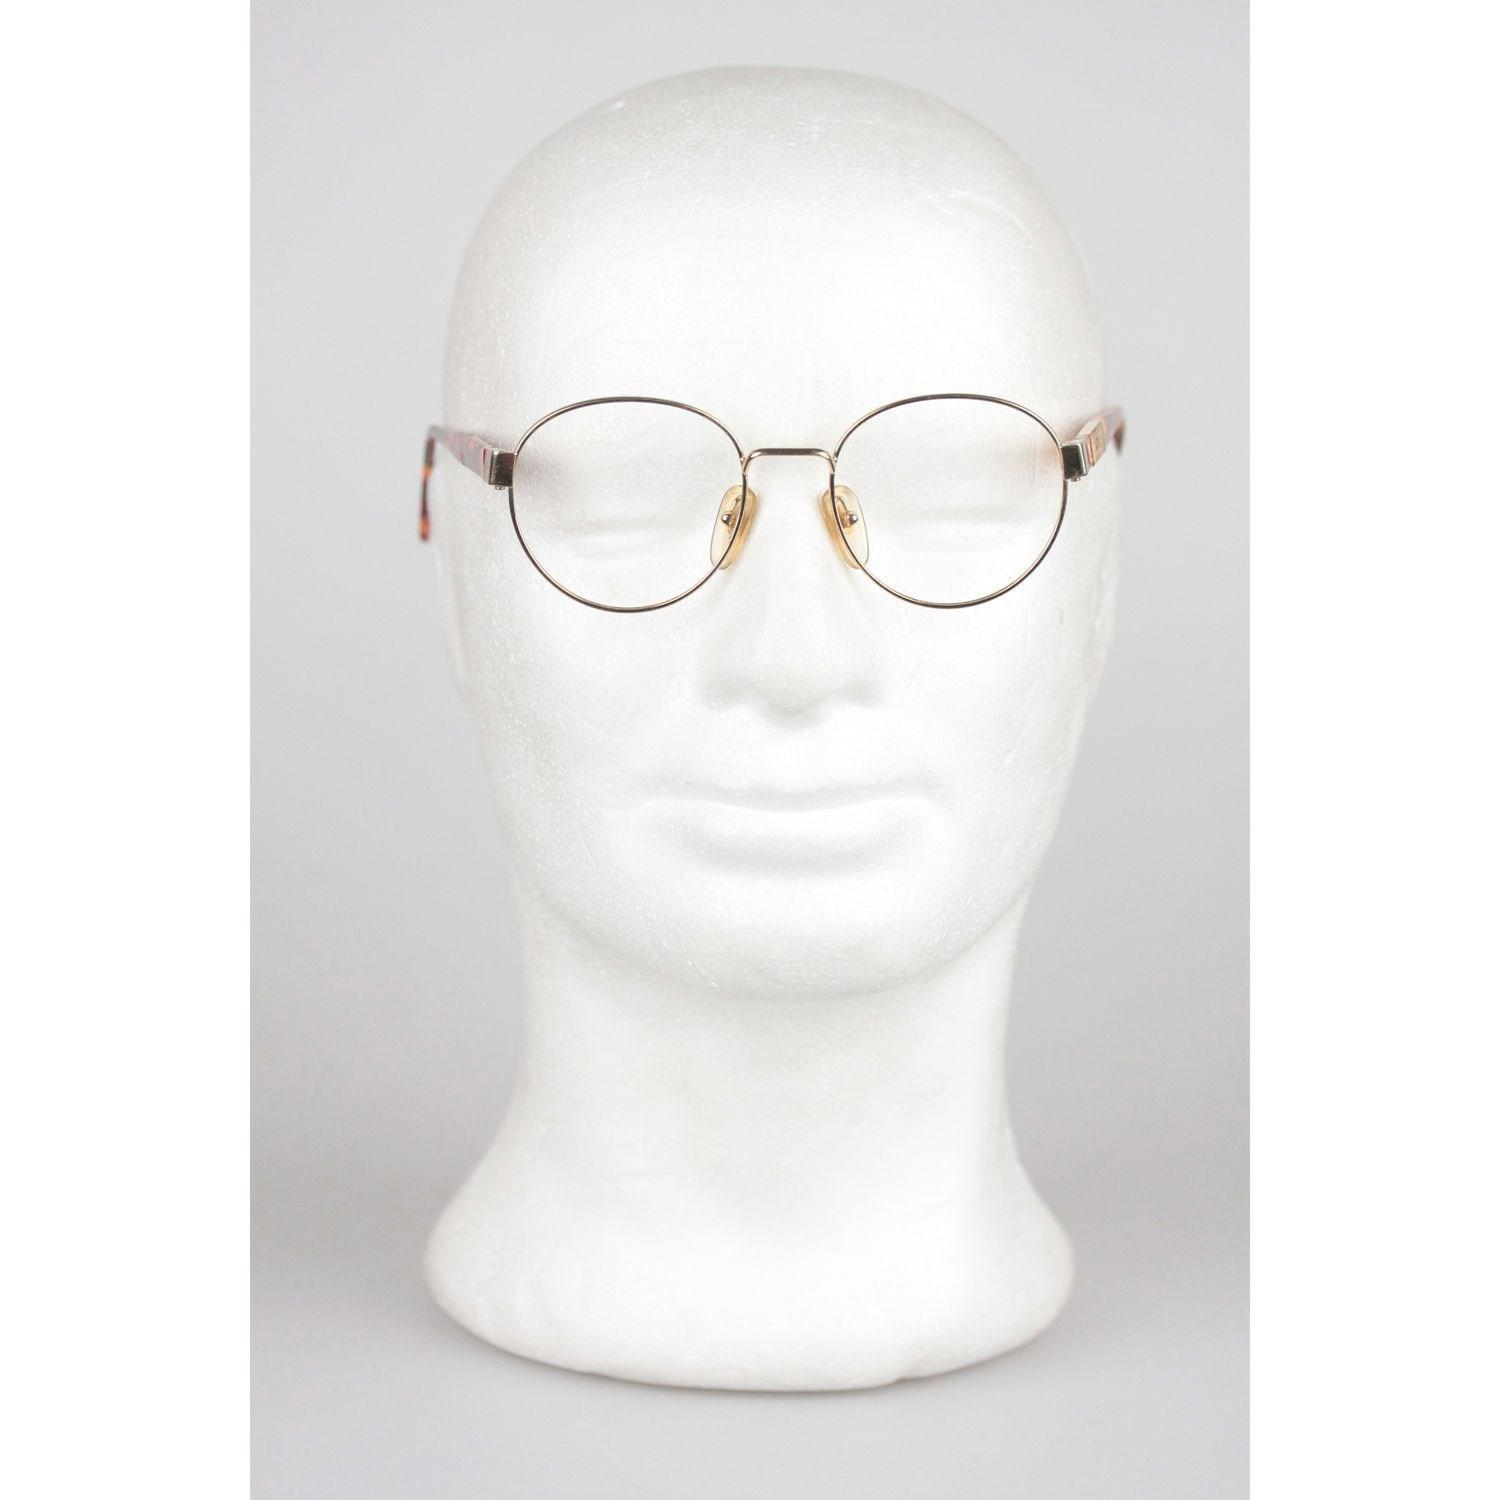 f967d31cfe Moschino By Persol Vintage Gold Metal Round Frame Eyeglasses M09 50 ...